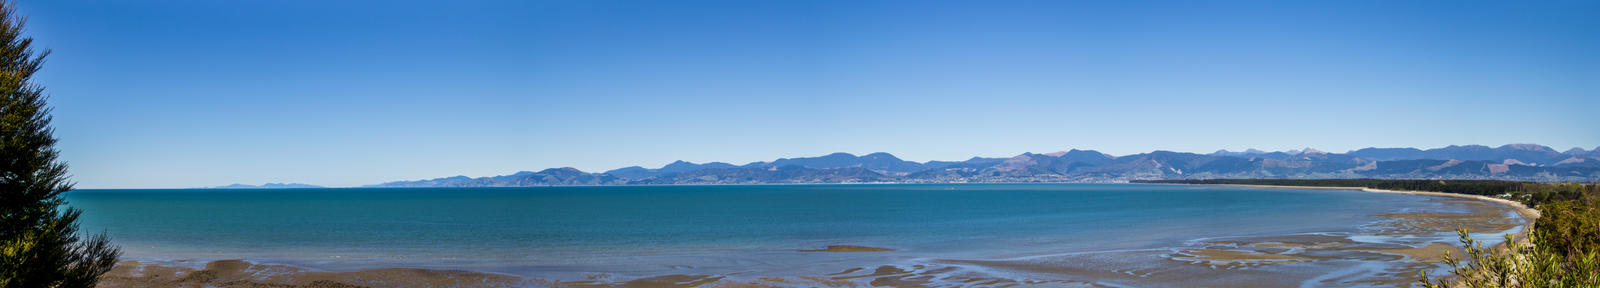 Panoramic view from Ruby Bay, Tasman, NZ by therealpegleg